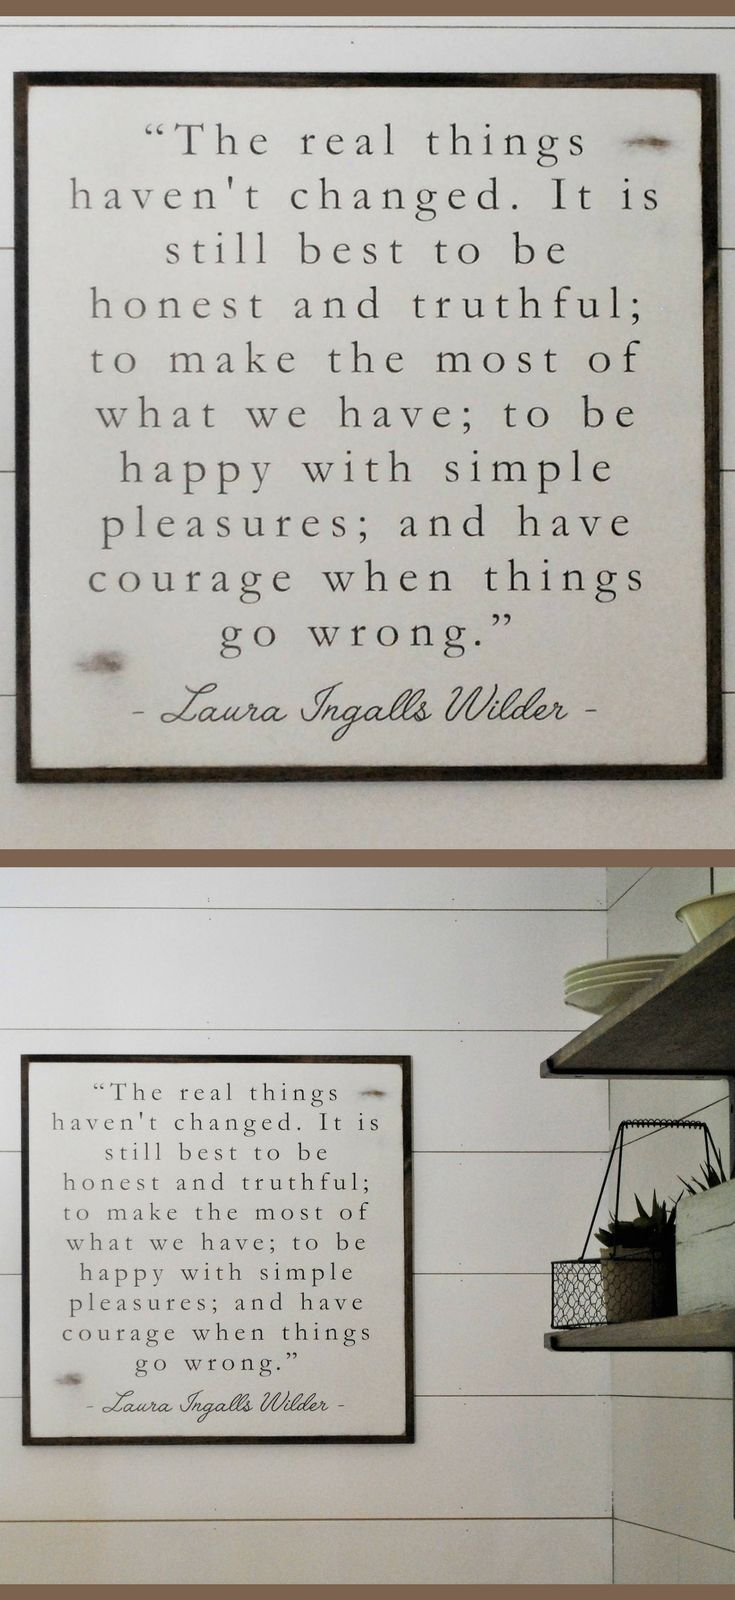 One of my favorite quotes! THE REAL THINGS Laura Ingalls Wilder quote | distressed painted wall plaque | shabby chic farmhouse decor | framed wall art | rustic decor | farmhouse sign | rustic sign | gift idea #ad